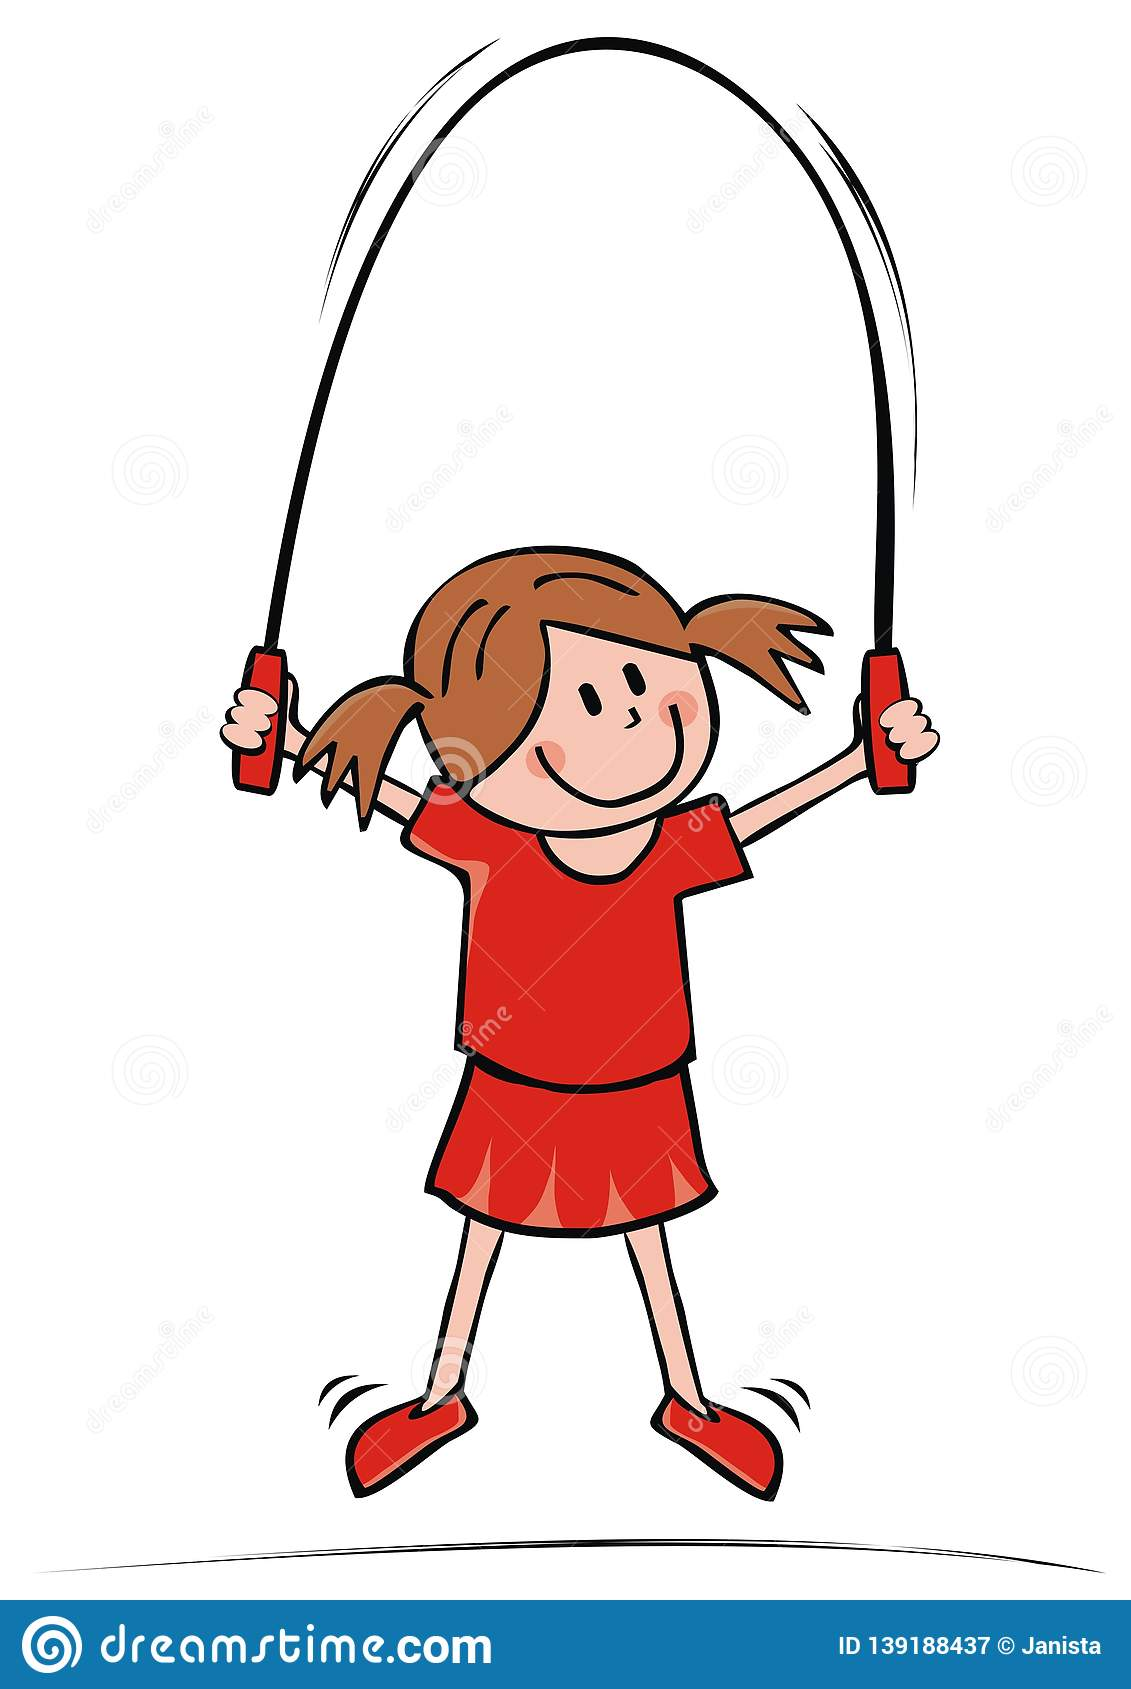 Mother and daughter jump rope - Download Free Vectors, Clipart Graphics &  Vector Art